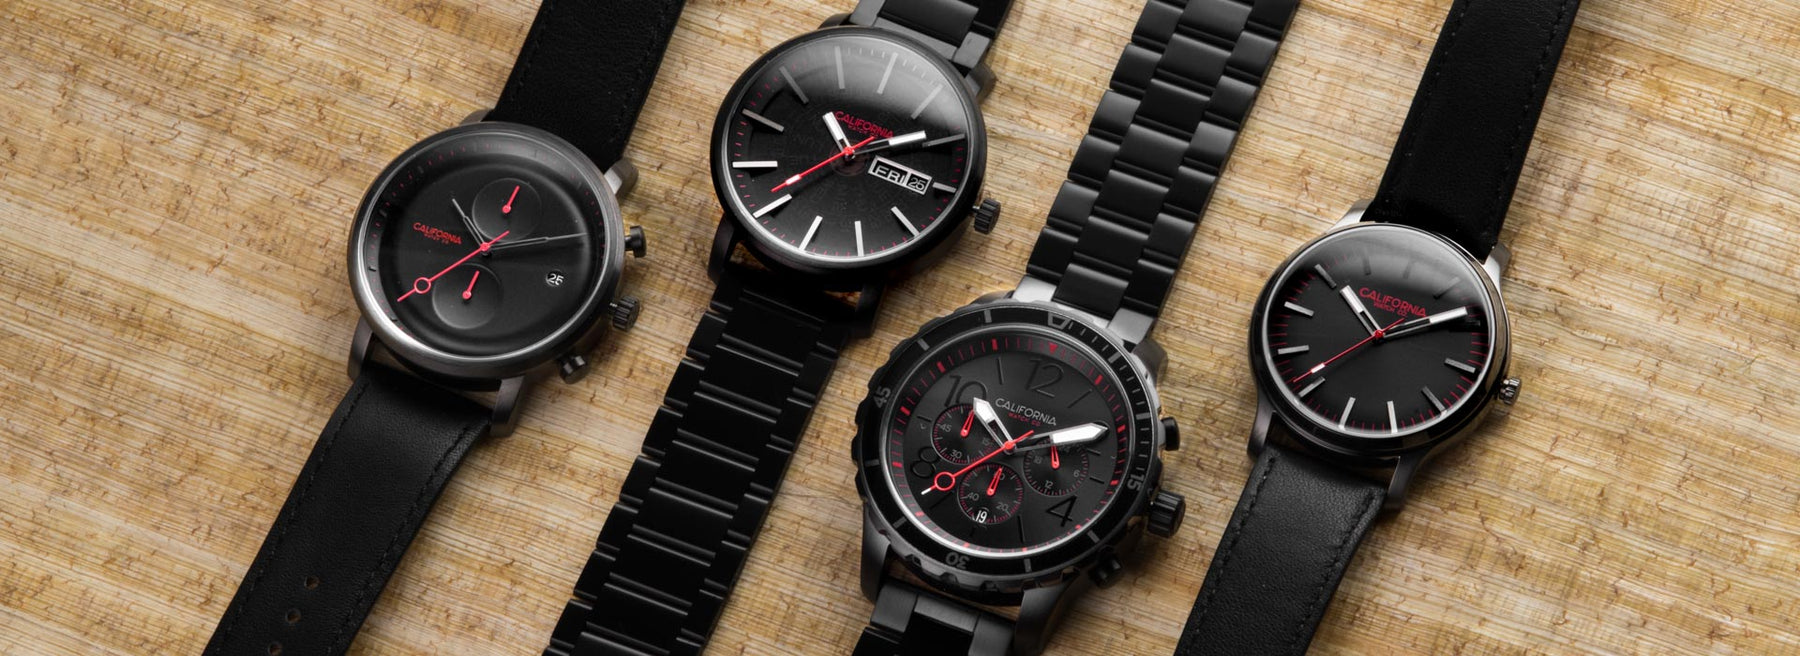 california watch co black red models